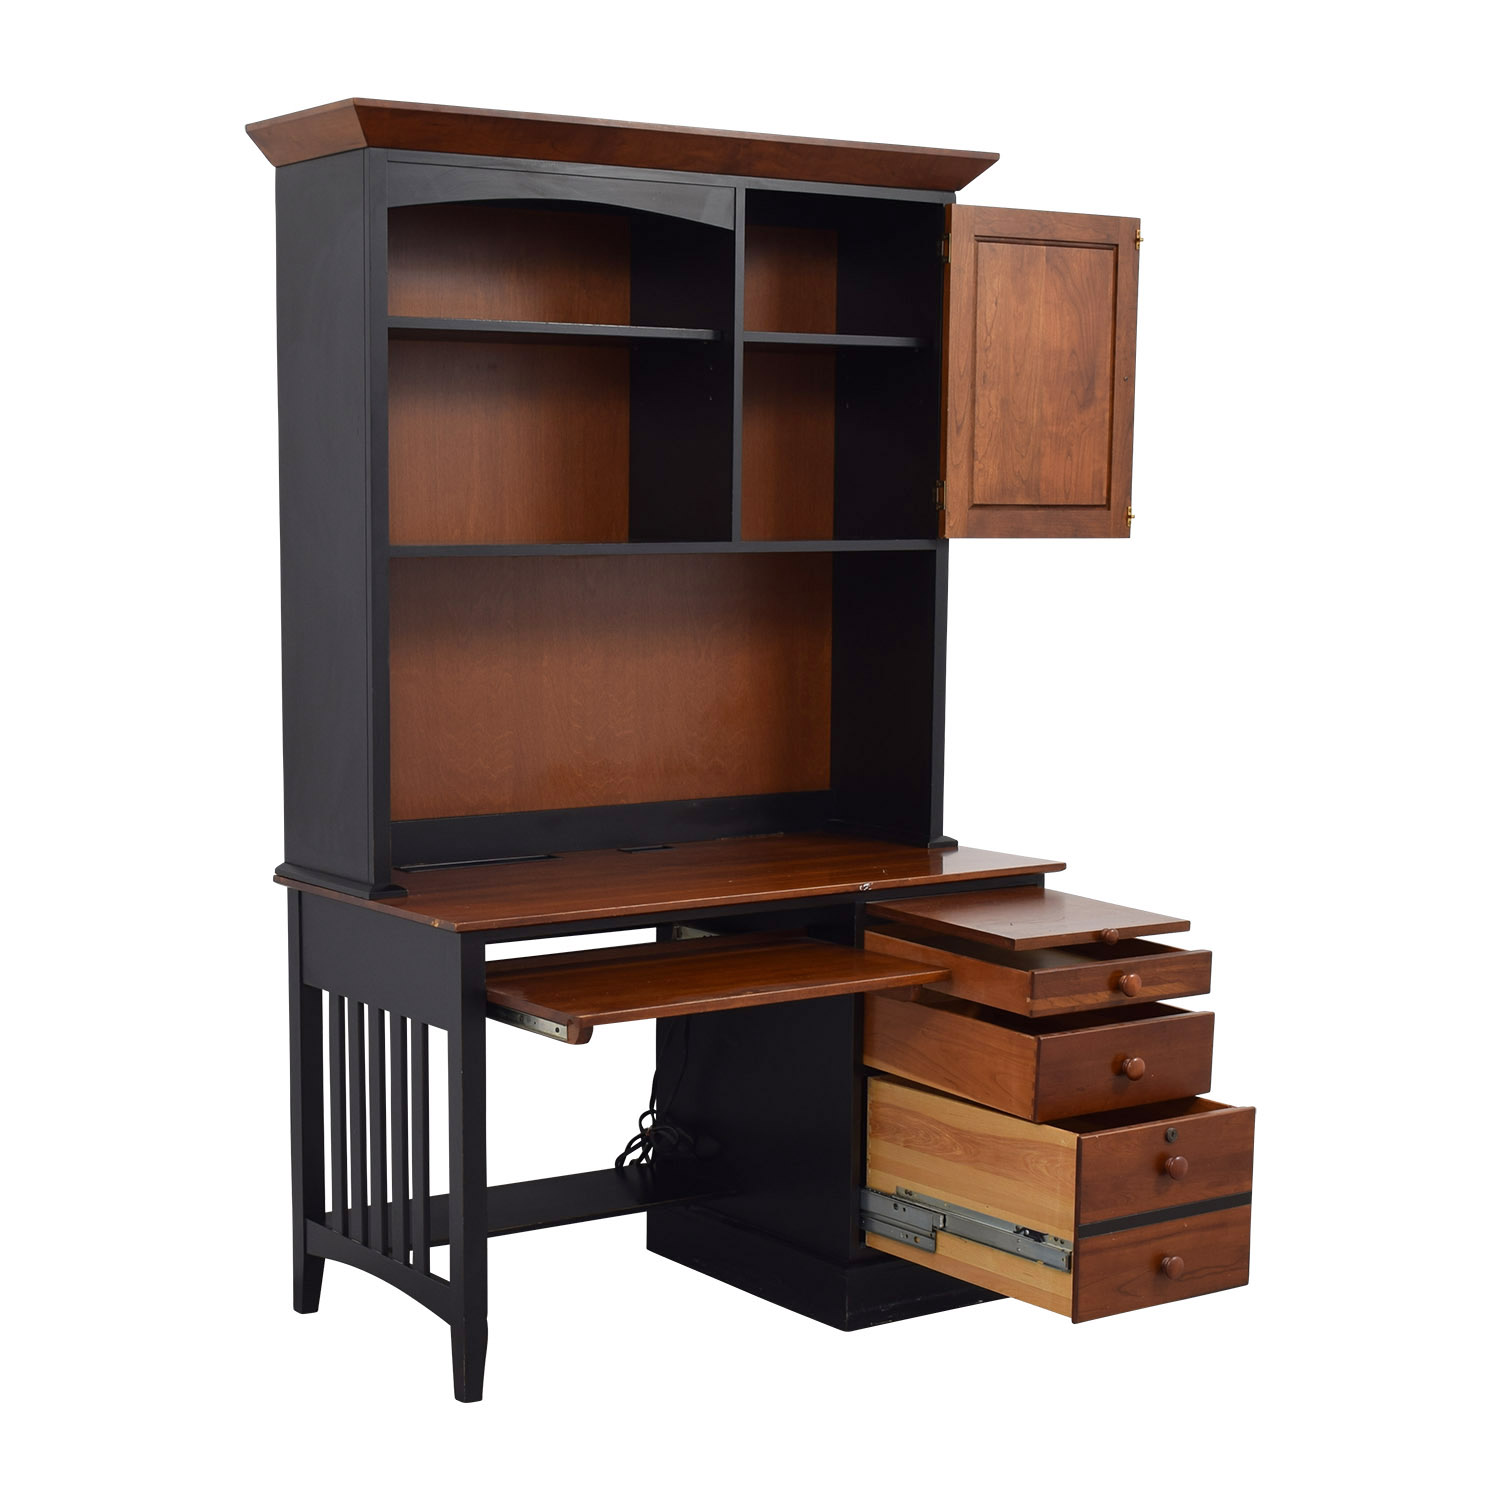 rc cherry wall rcwilley wood jsp bookcases home piece collection bookcase view brown richmond office door furniture willey